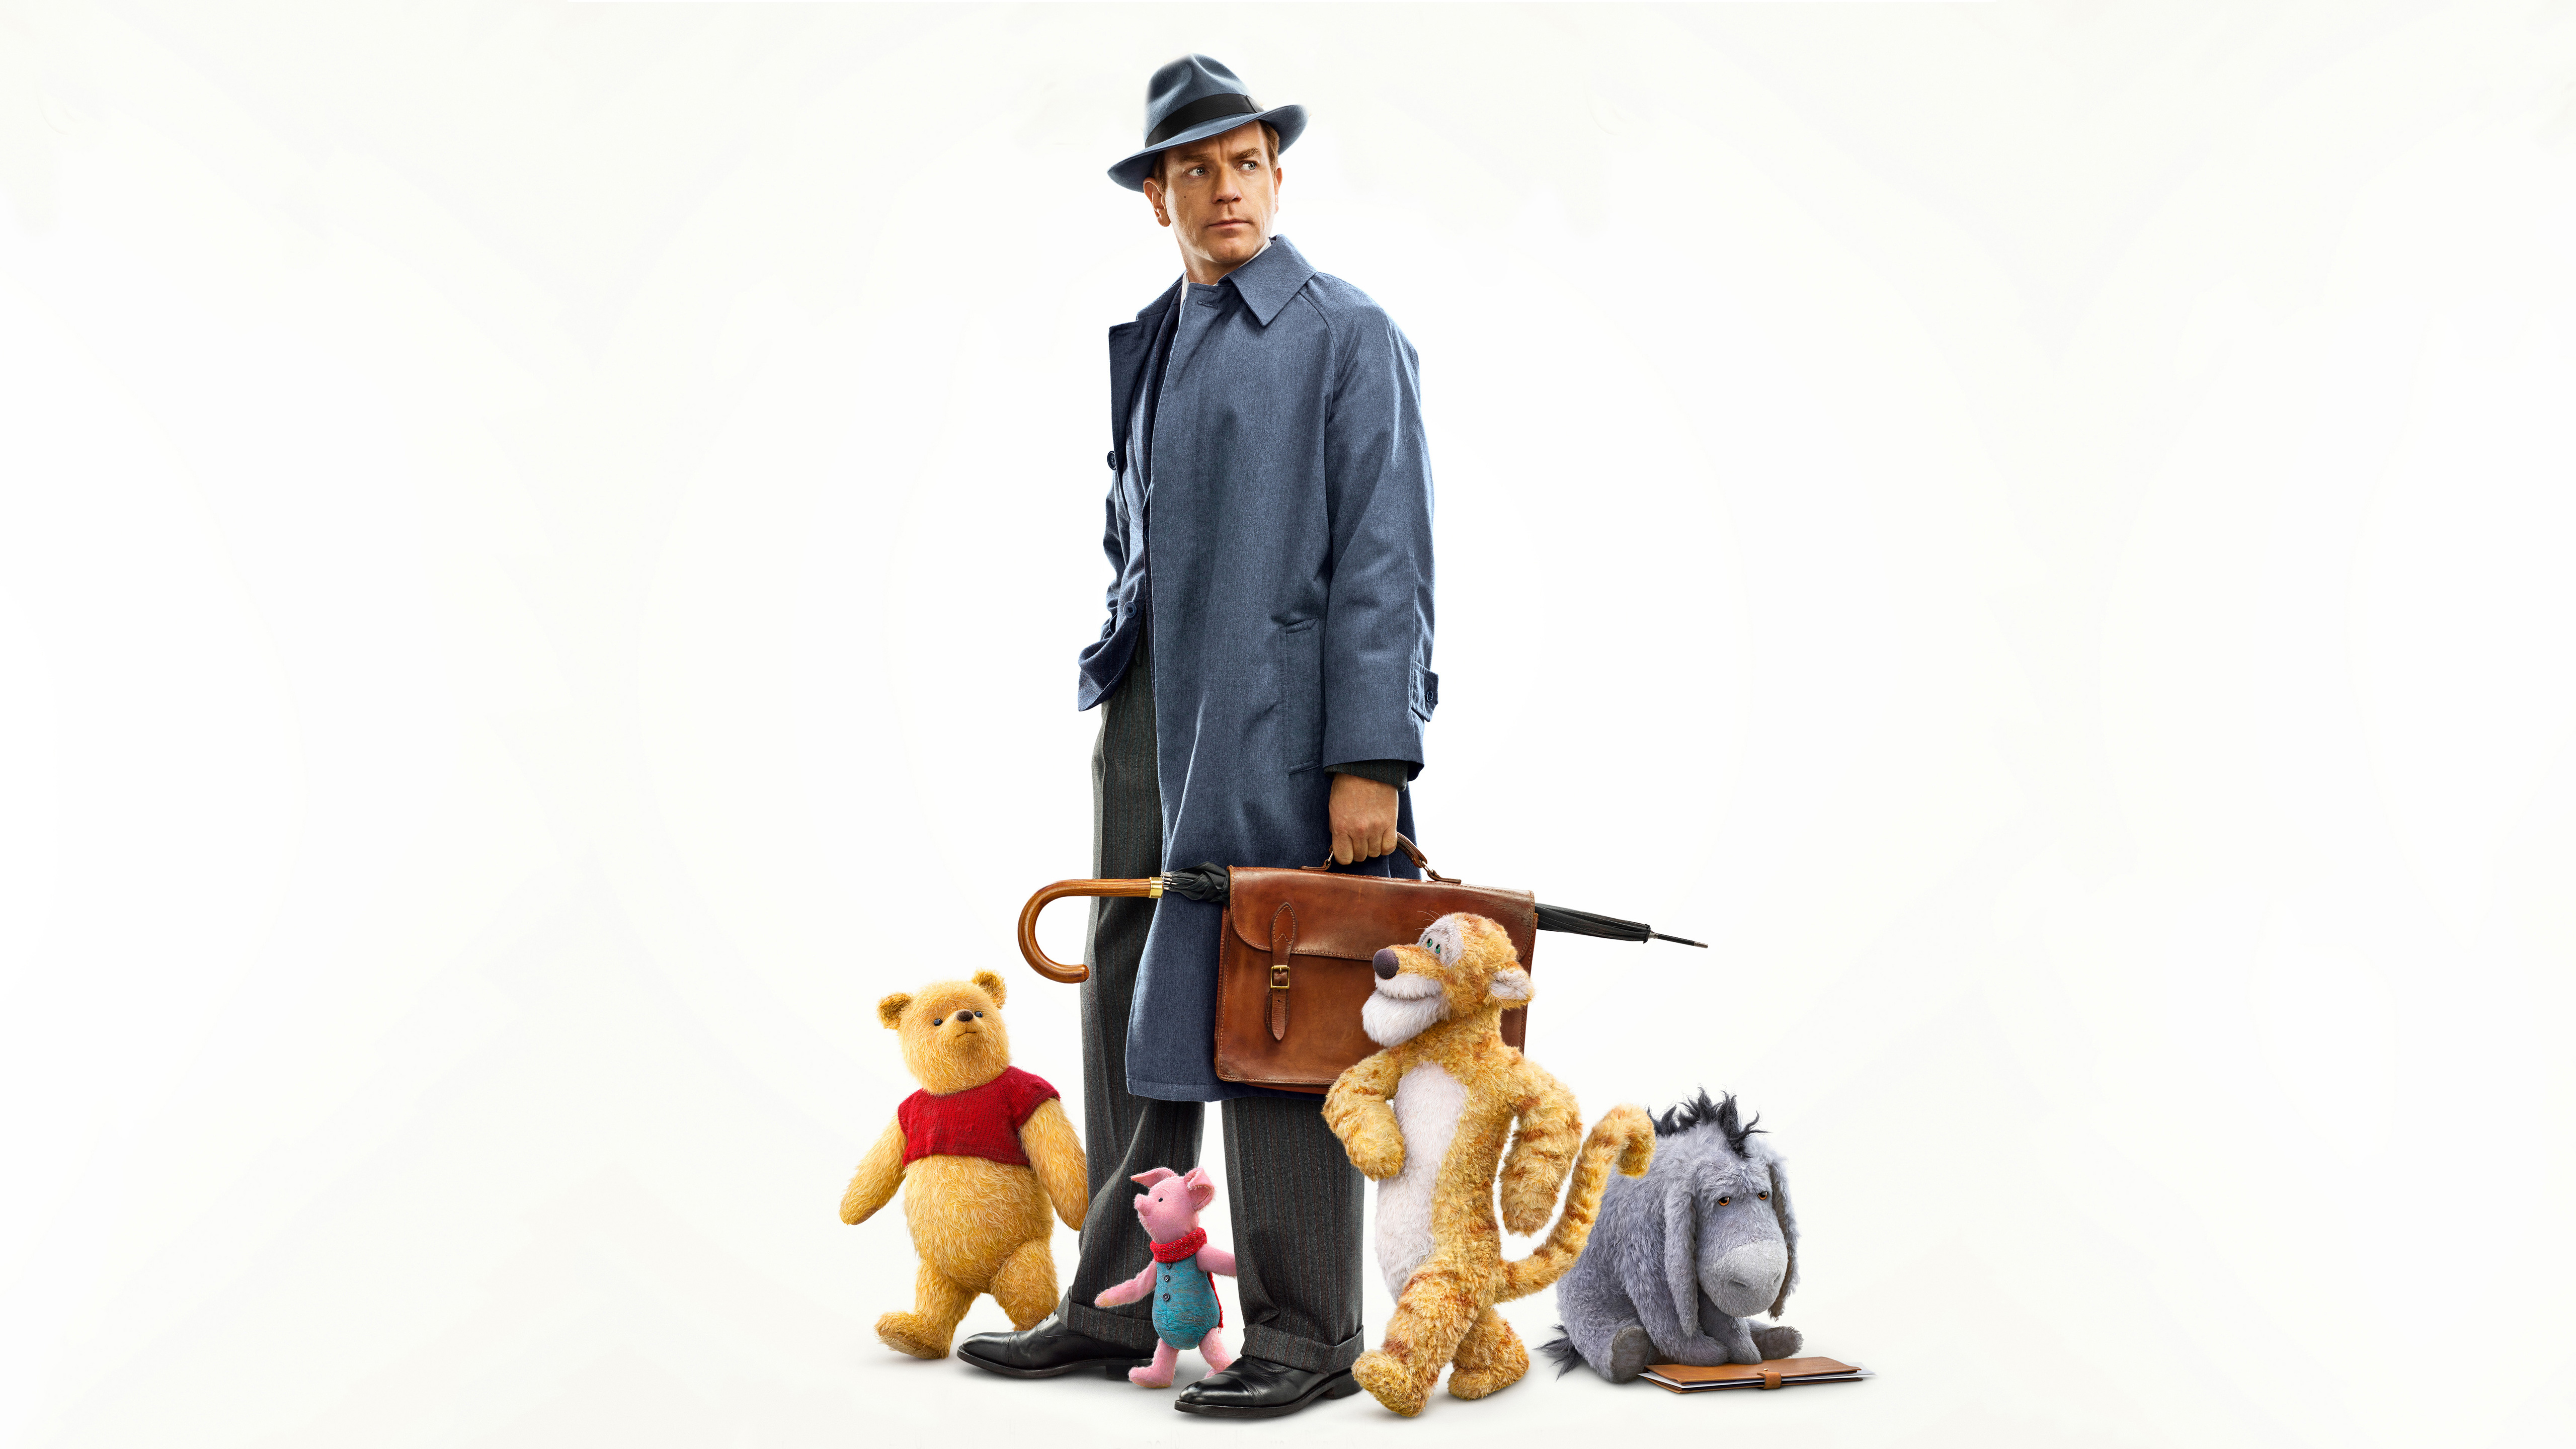 750x1334 Christopher Robin 2018 Movie 5k IPhone 6, IPhone